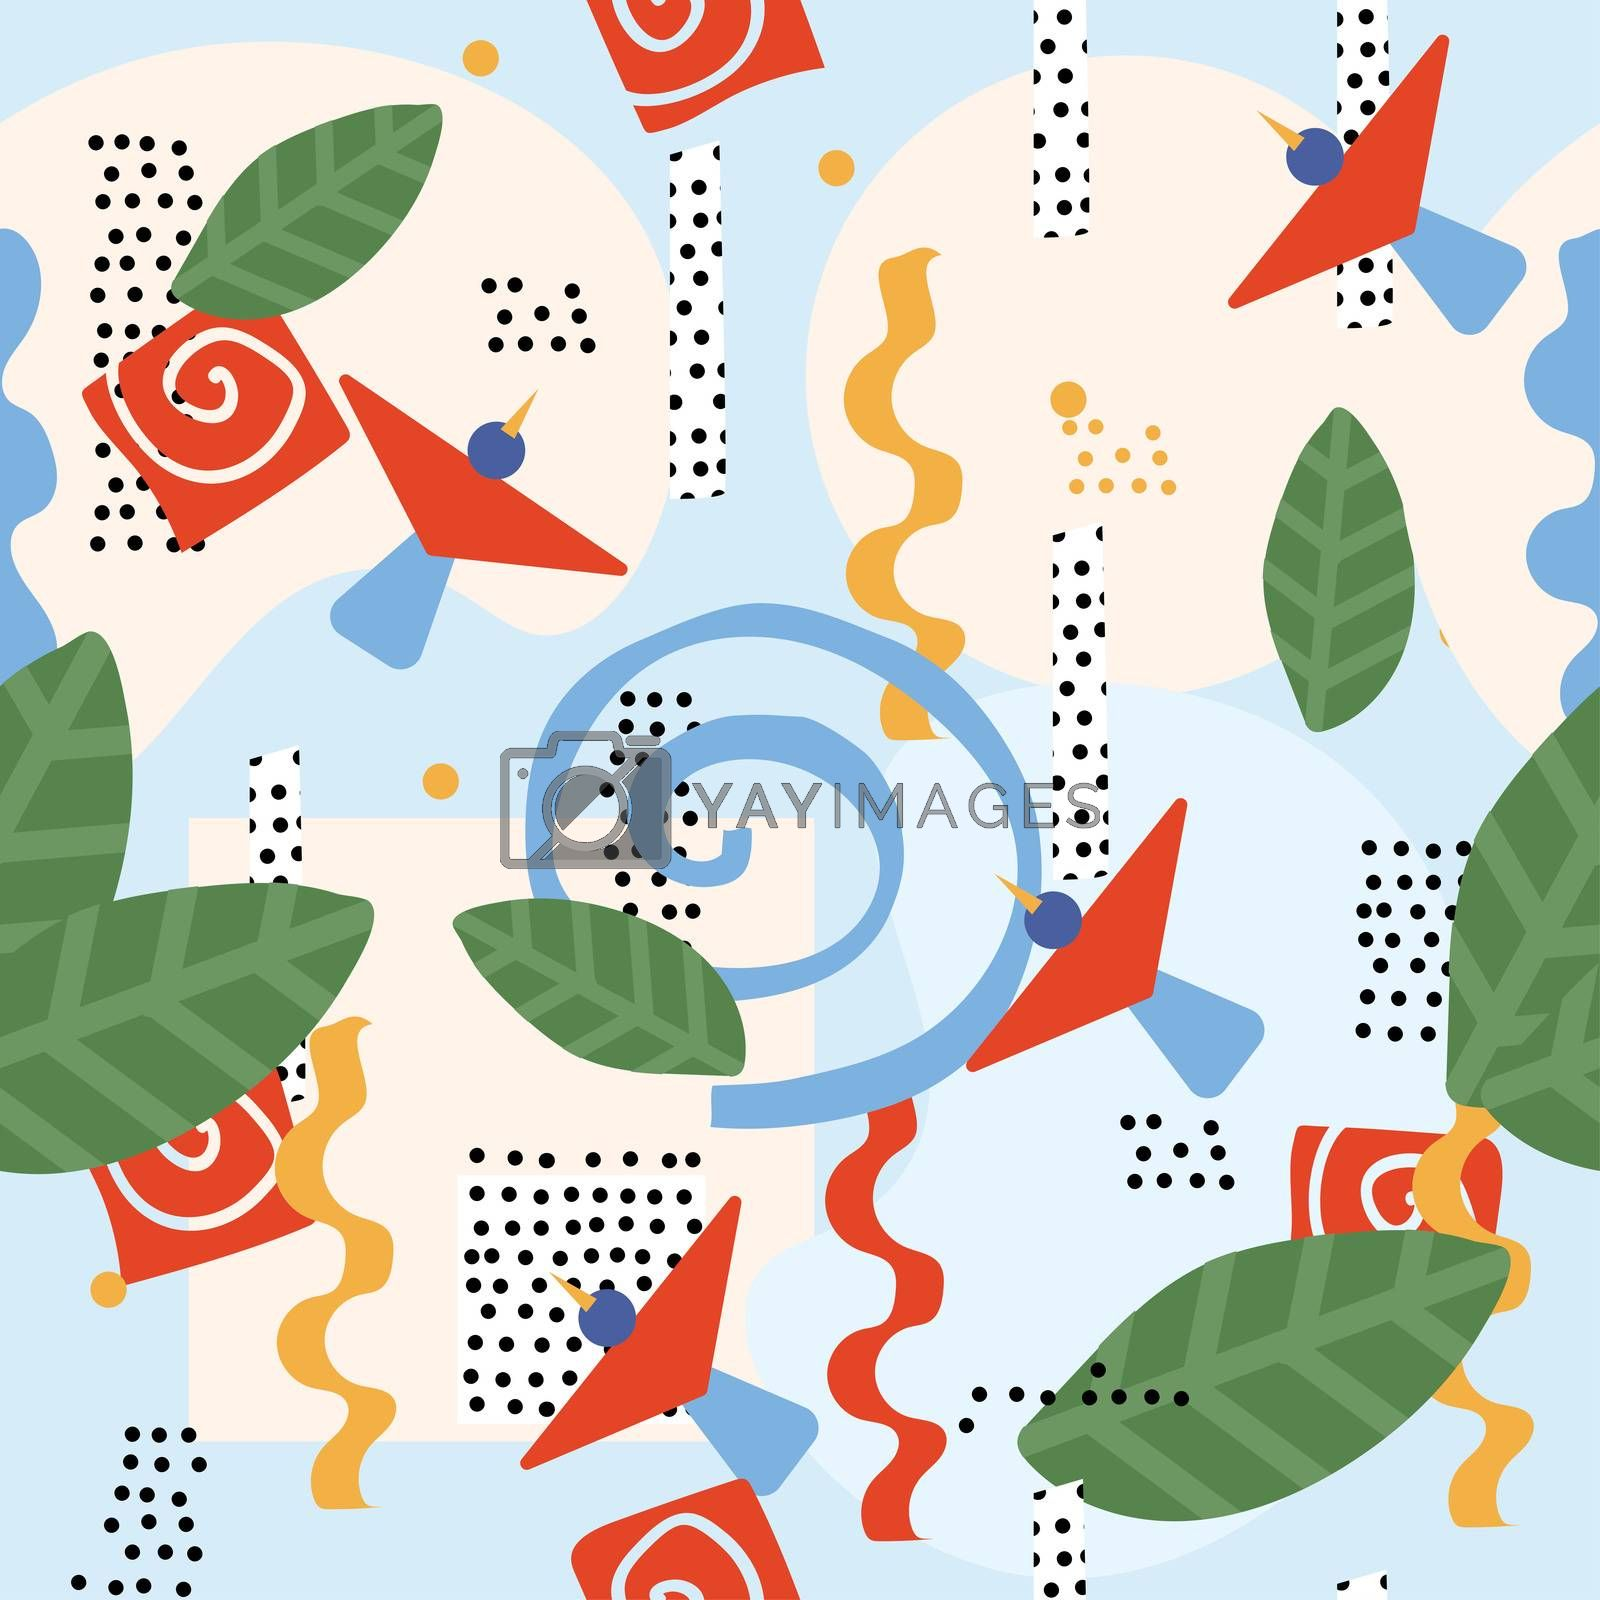 Bright colorful graphic floral pattern with birds in love in a hand-drawn style. Seamless pattern with birds and figures.